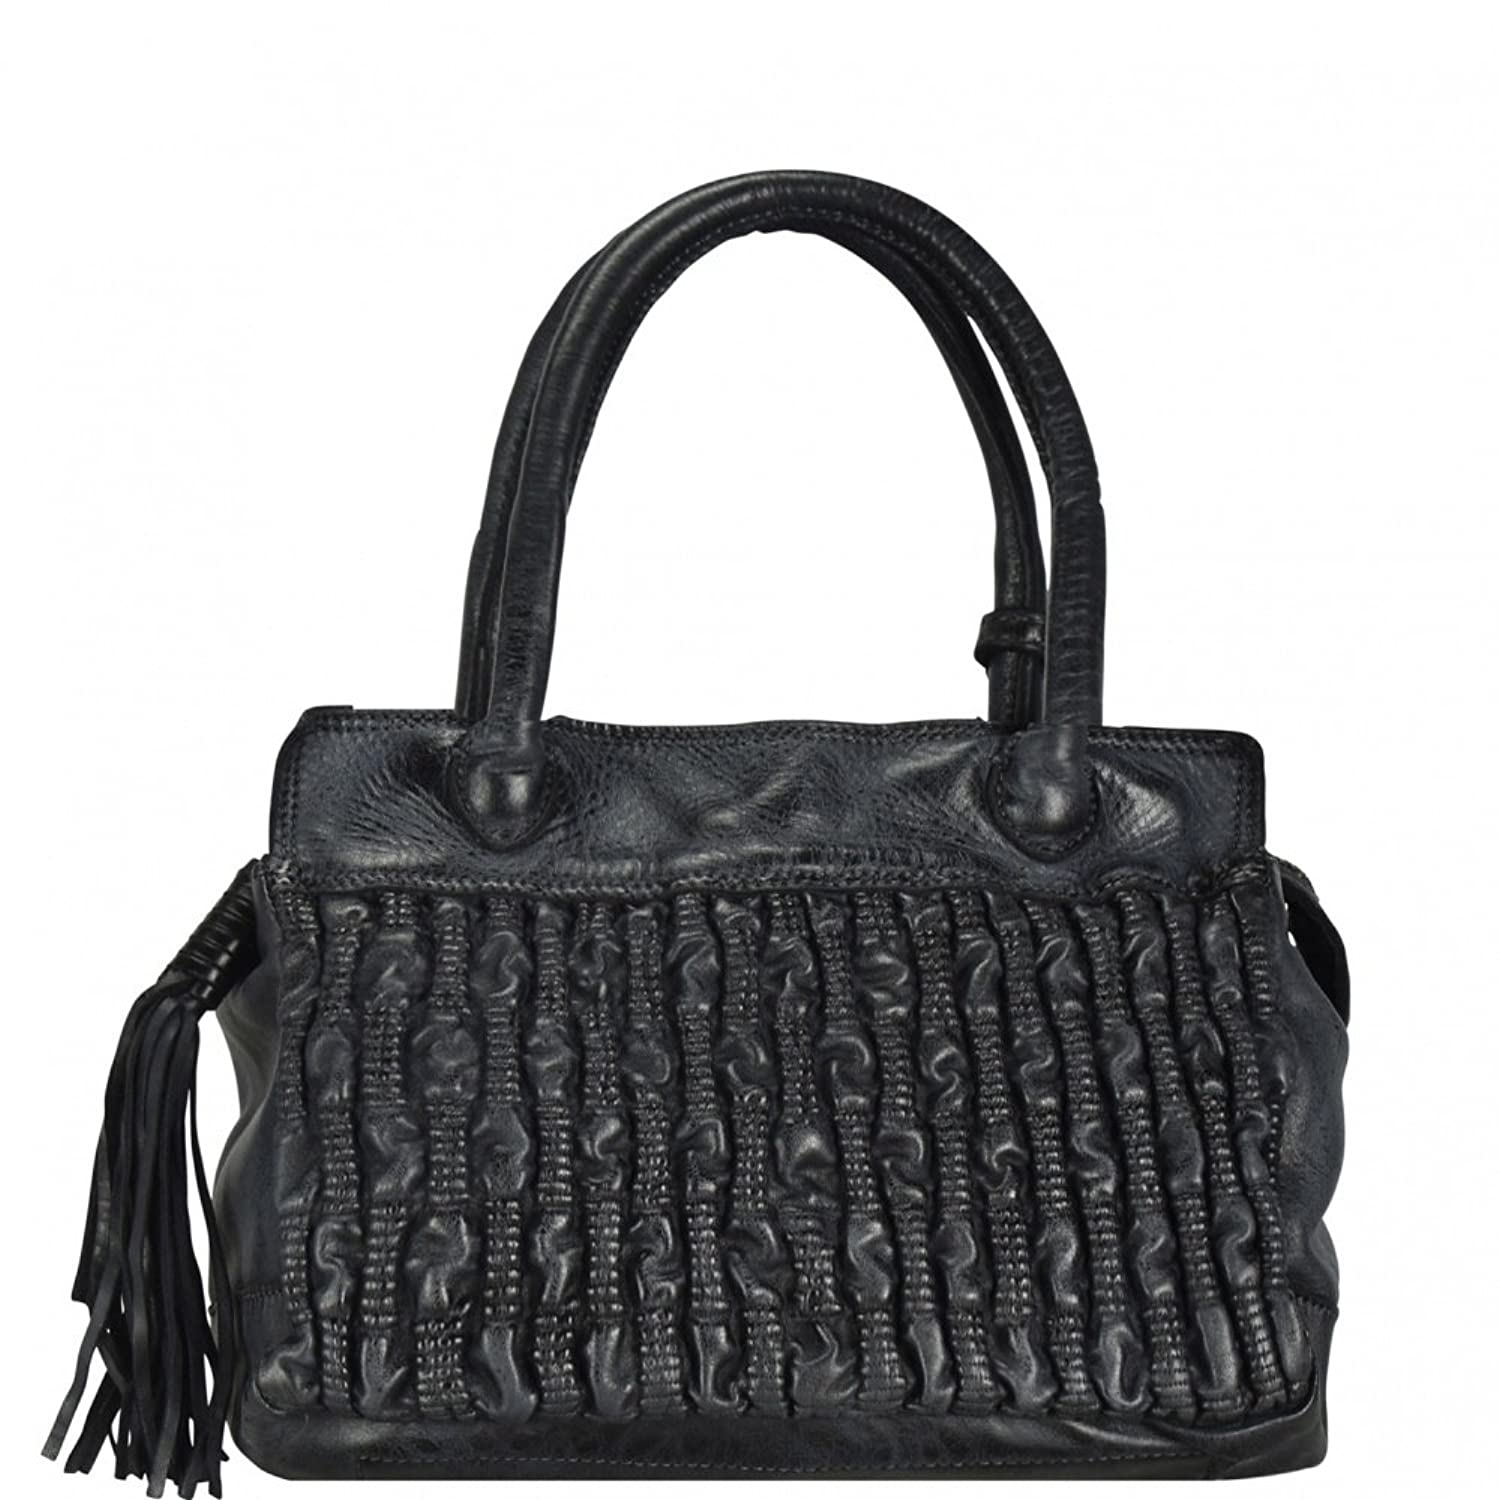 Caterina Lucchi Handle Bag Leather 28 cm